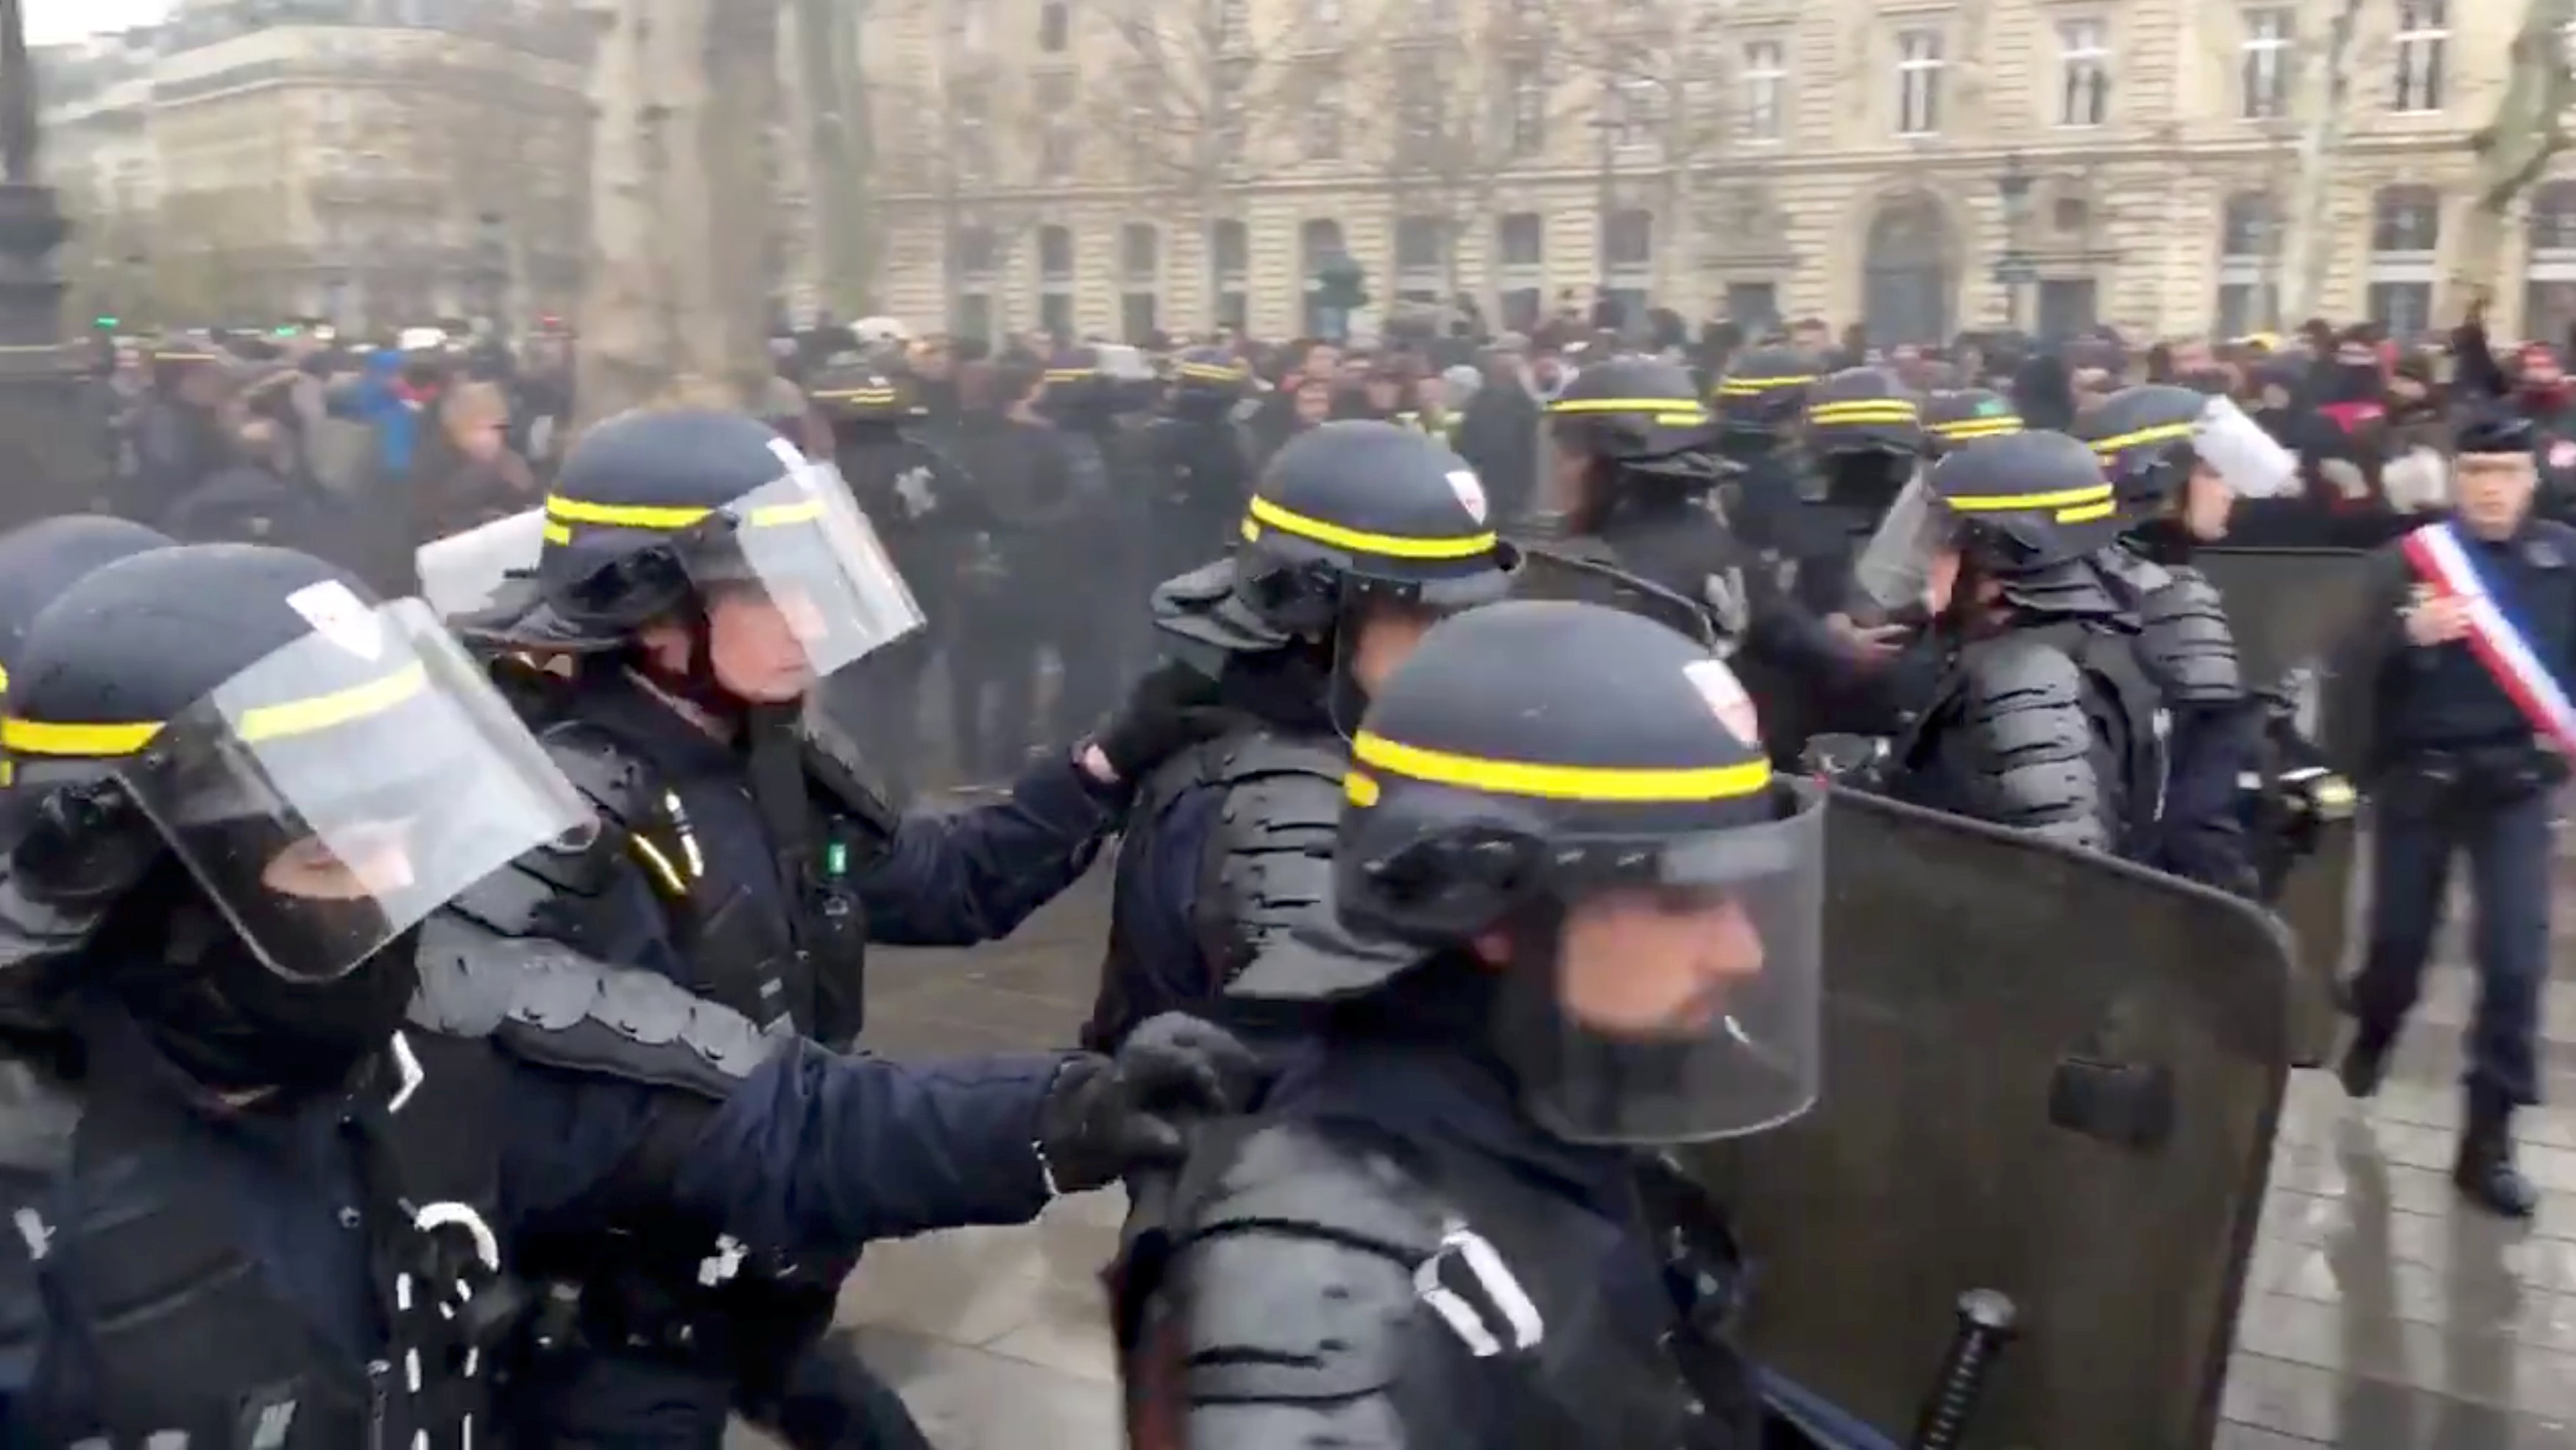 2018-12-07T143627Z_312064232_RC13C5CD3320_RTRMADP_3_FRANCE-PROTESTS